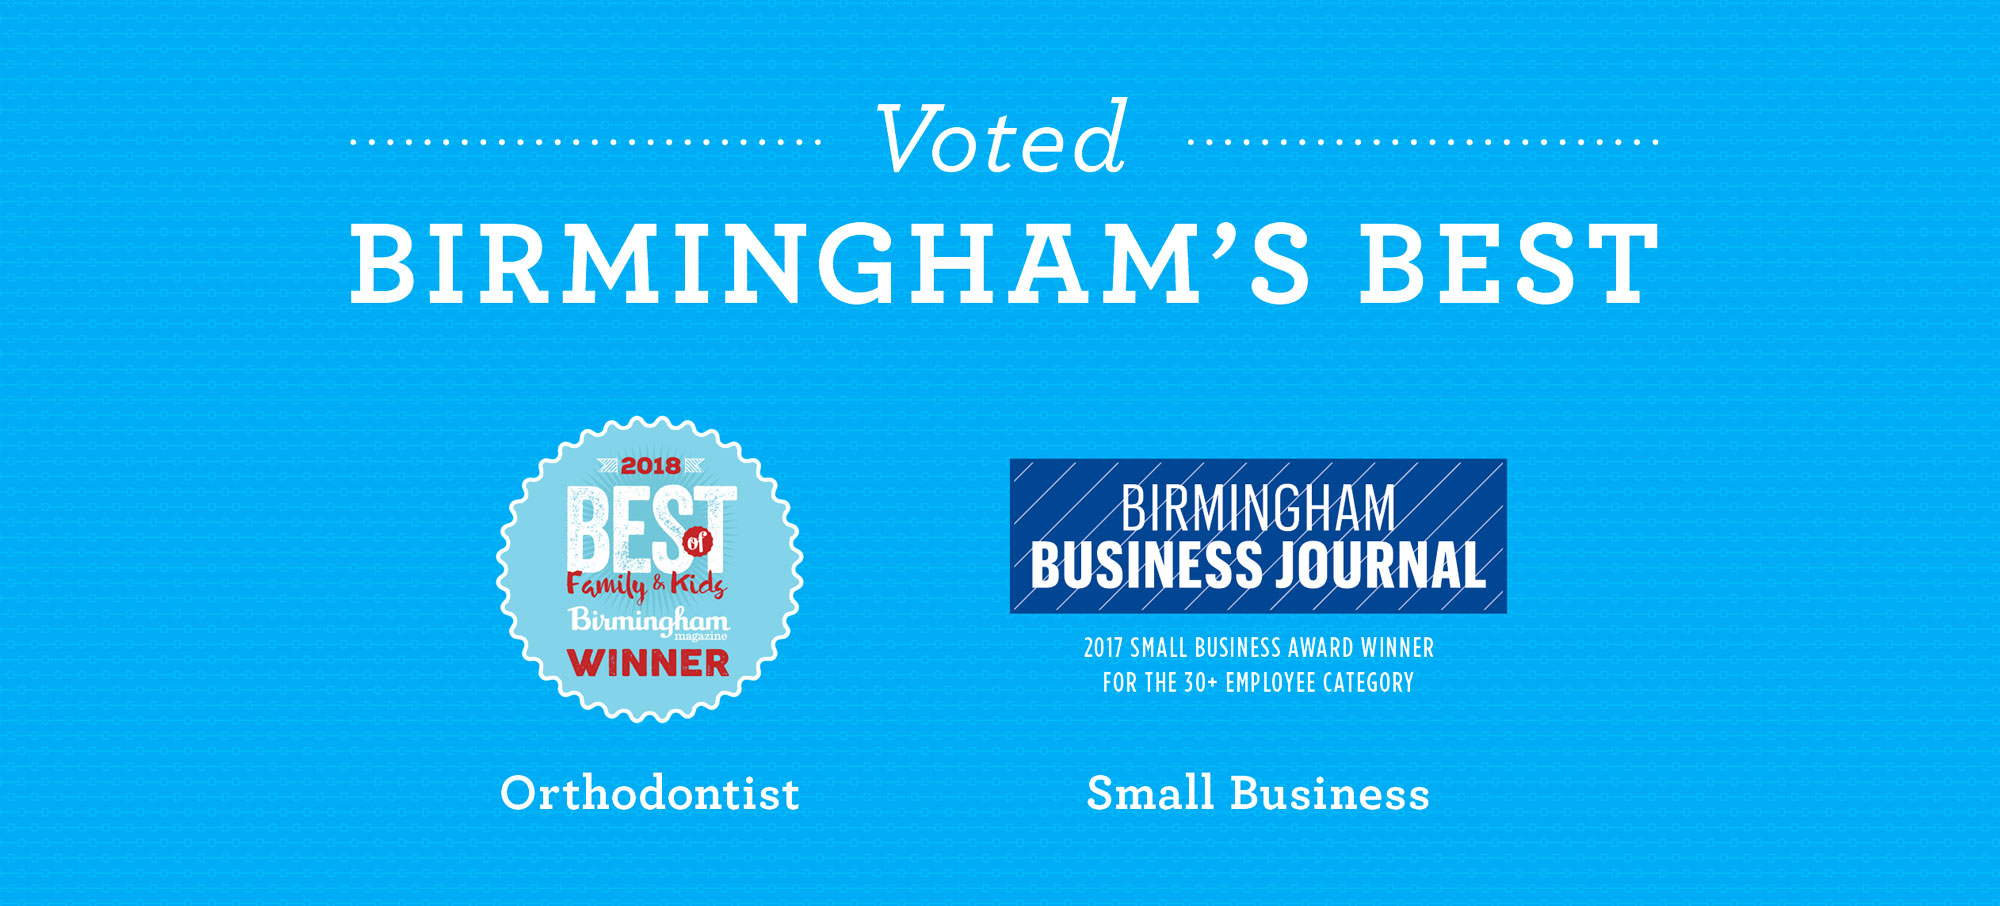 birmingham best in orthodontics